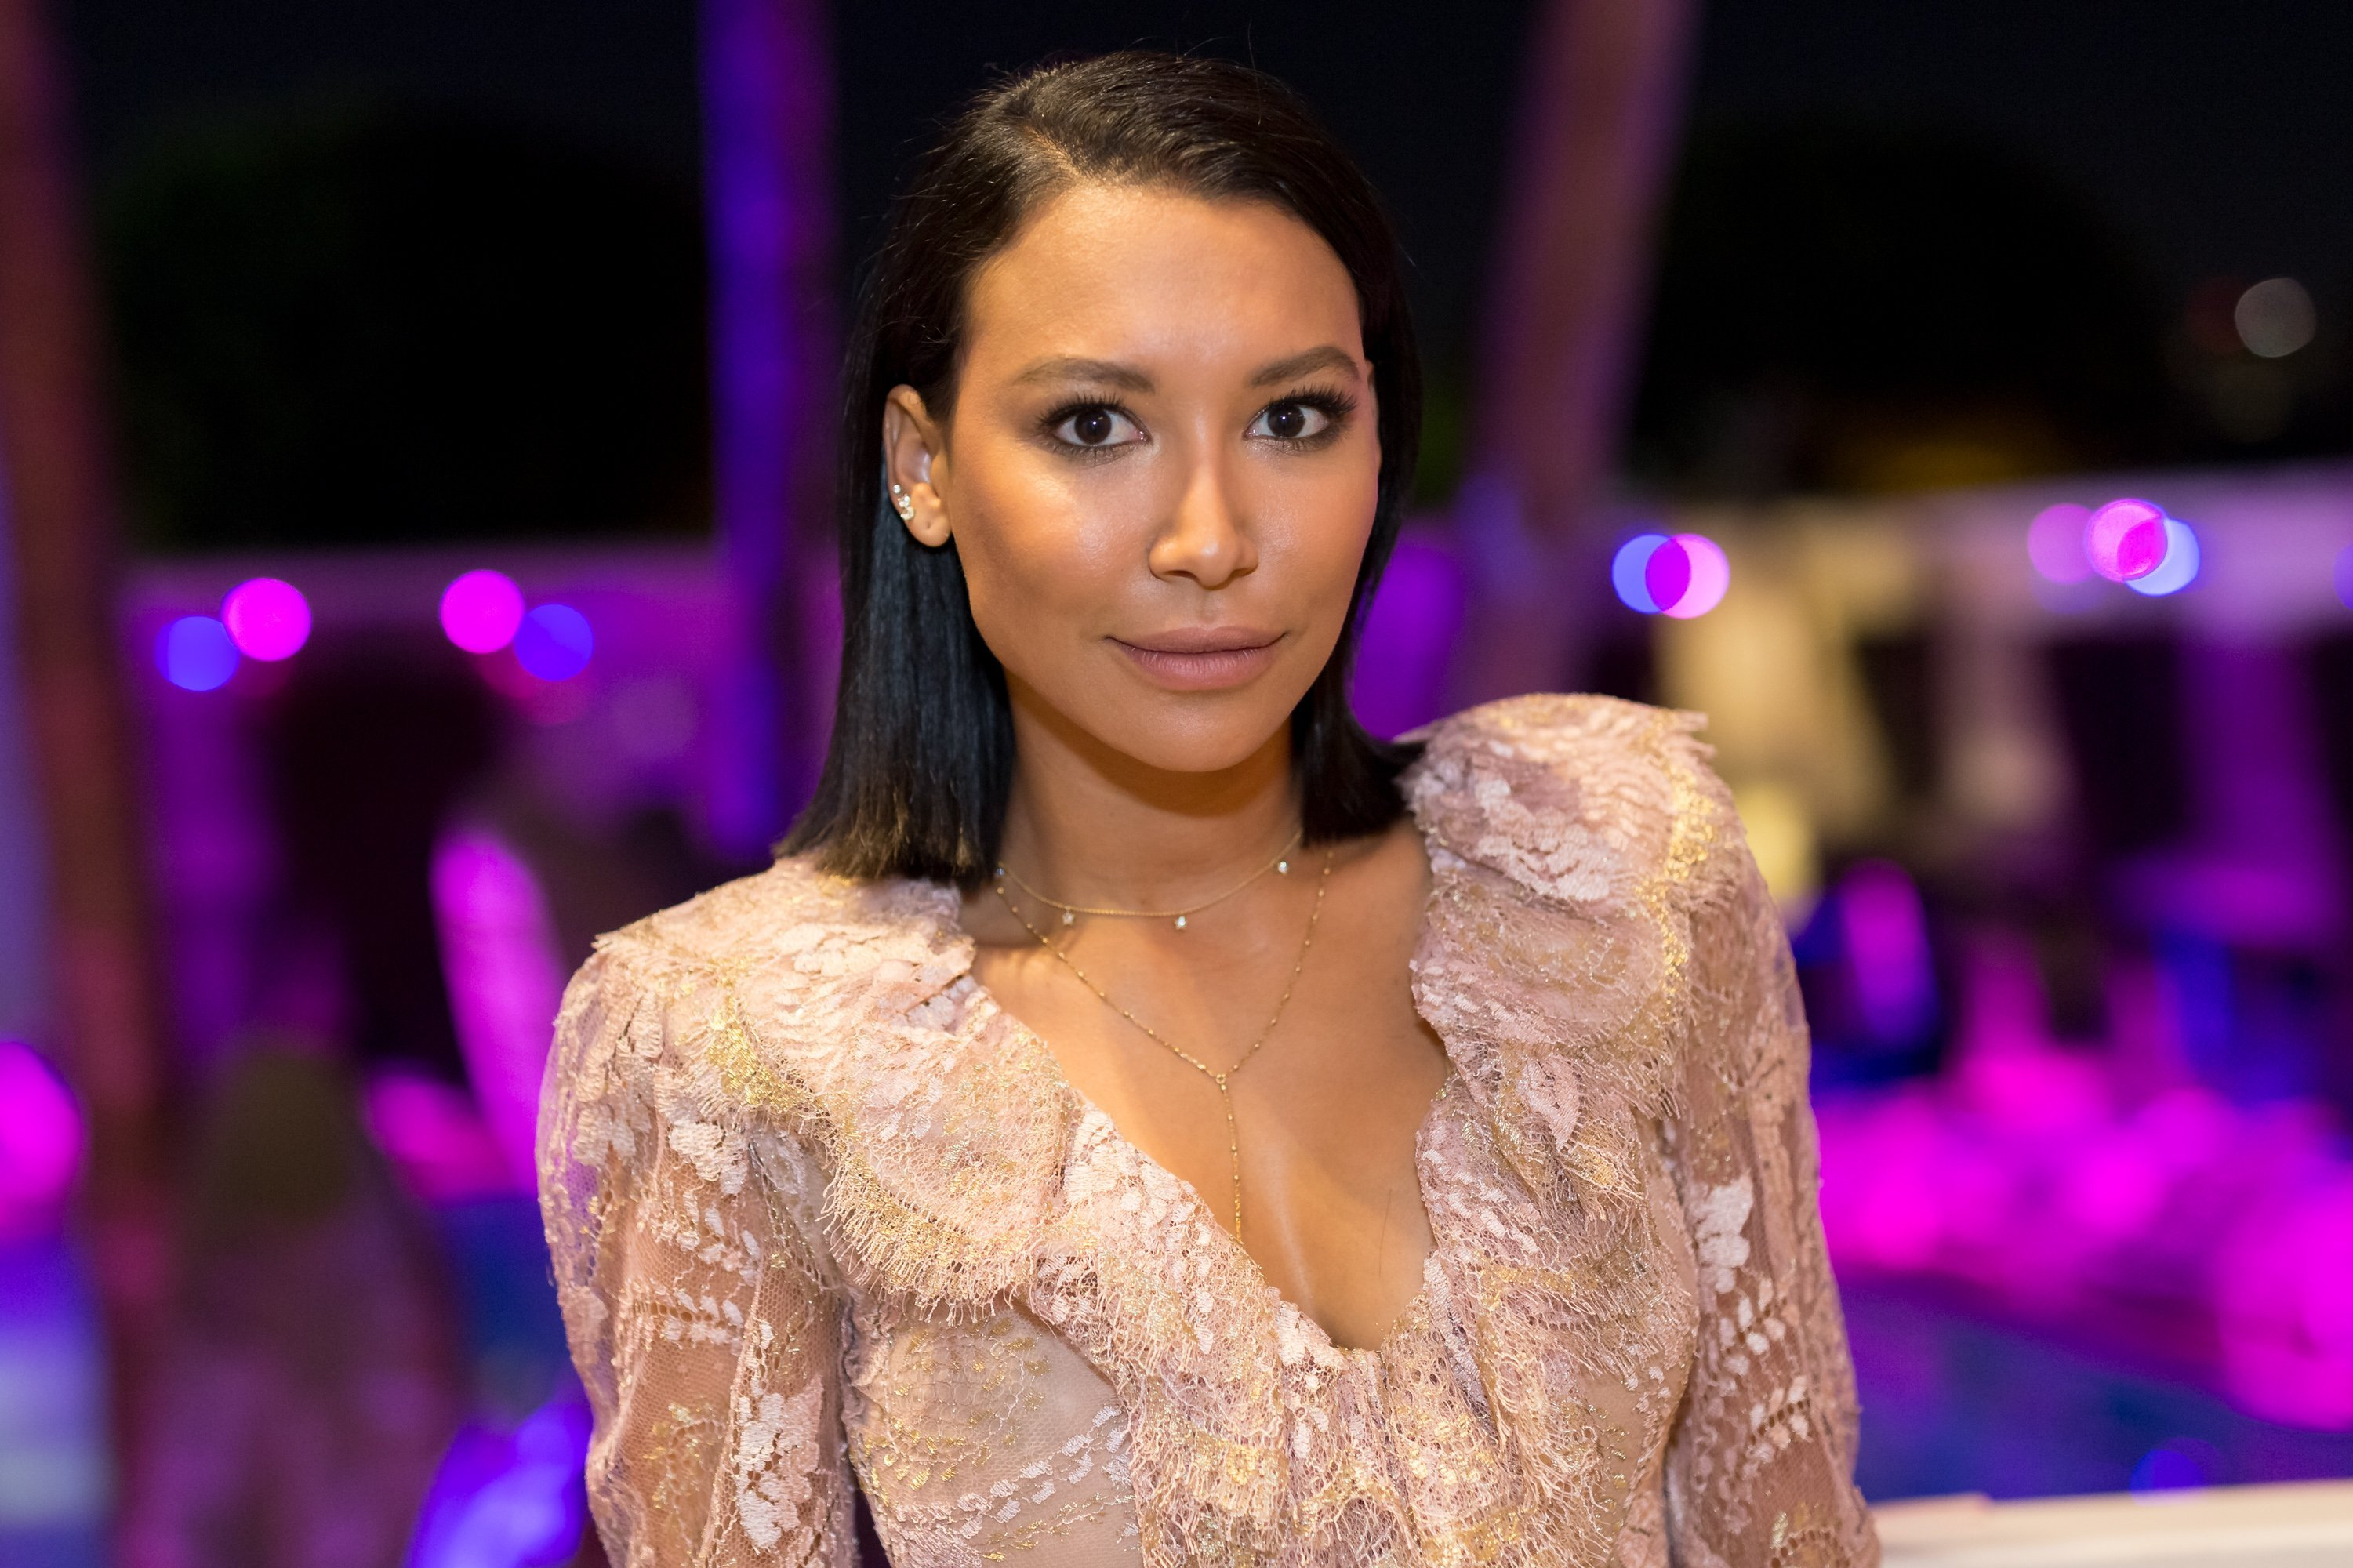 Naya Rivera poses during the Point Honors Los Angeles at The Beverly Hilton Hotel on October 7, 2017 in Beverly Hills, California. | Source: Getty Images